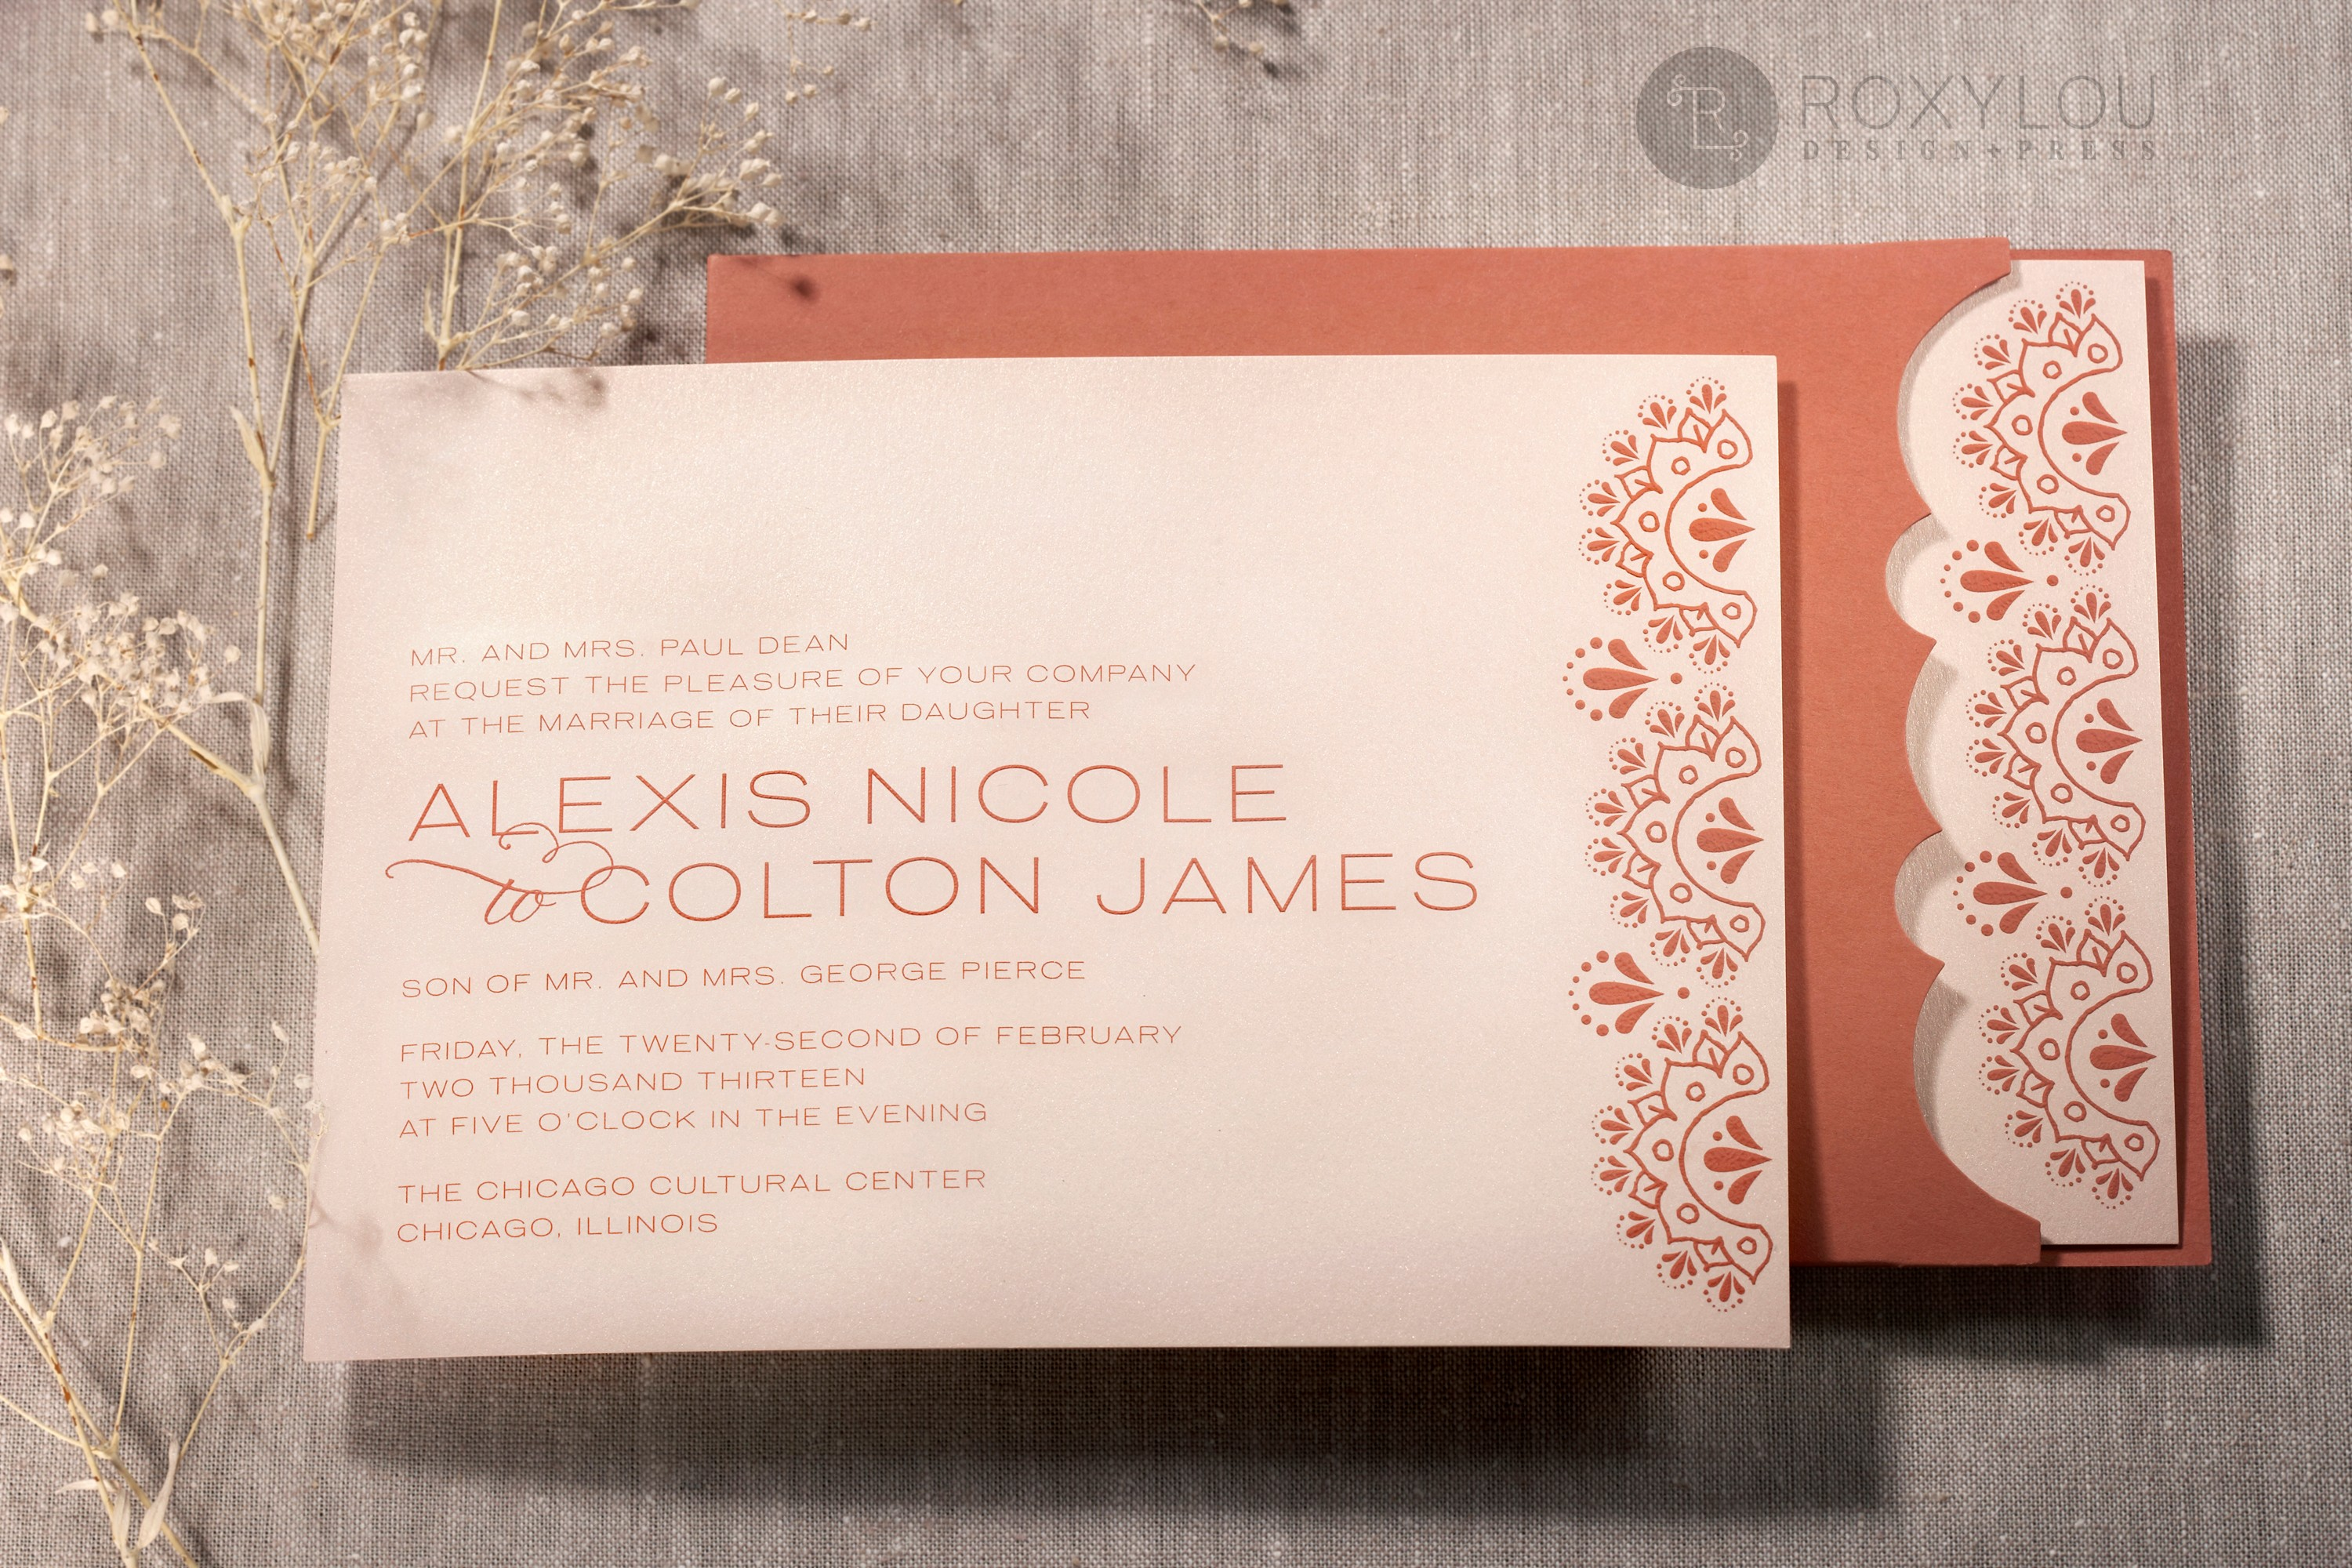 The Gypsy invitation suite features and engraved invitation card with a die-cut pocket that shows off the lovely invitation border.  Available in nearly any color combination, let us create something perfect for your event!